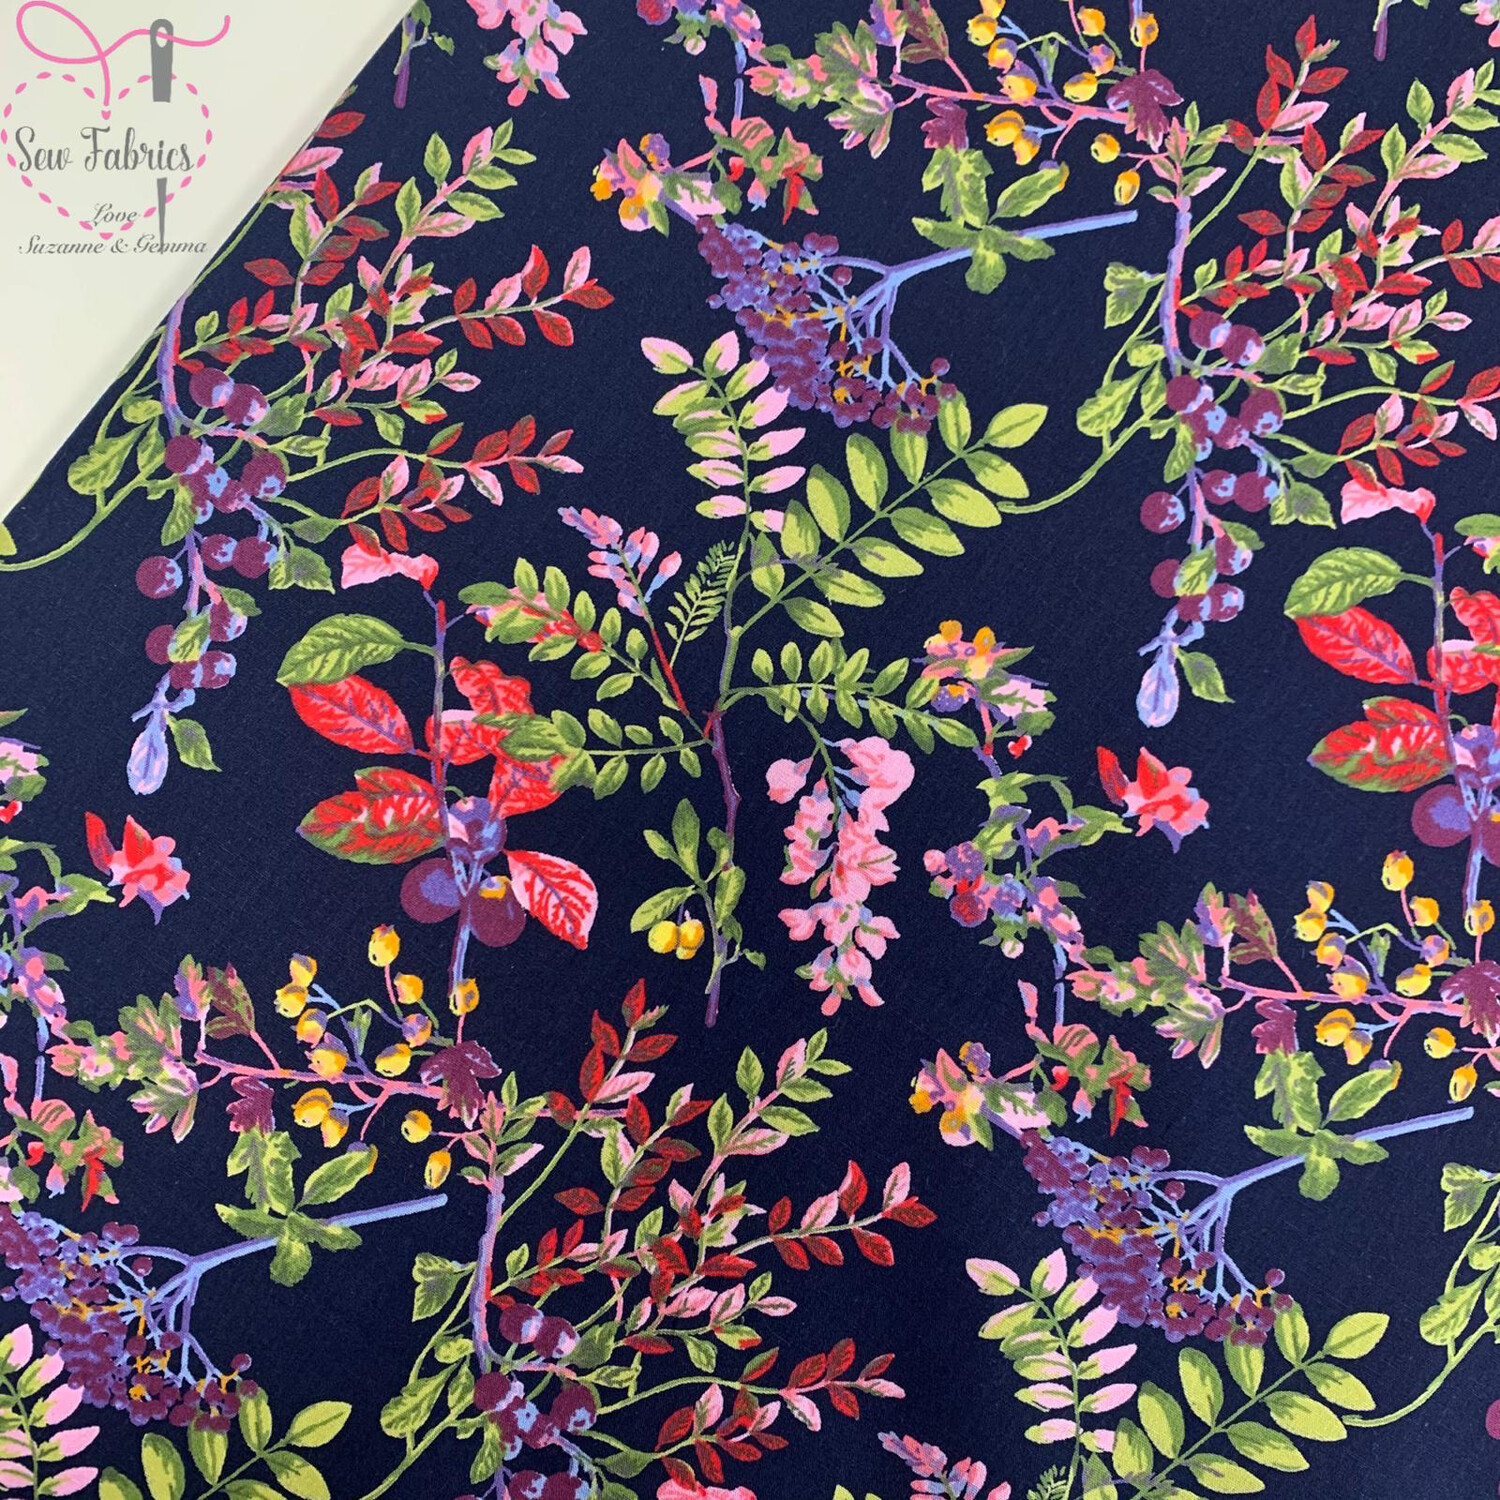 Rose & Hubble Navy Country Garden 100% Cotton Poplin Floral Fabric